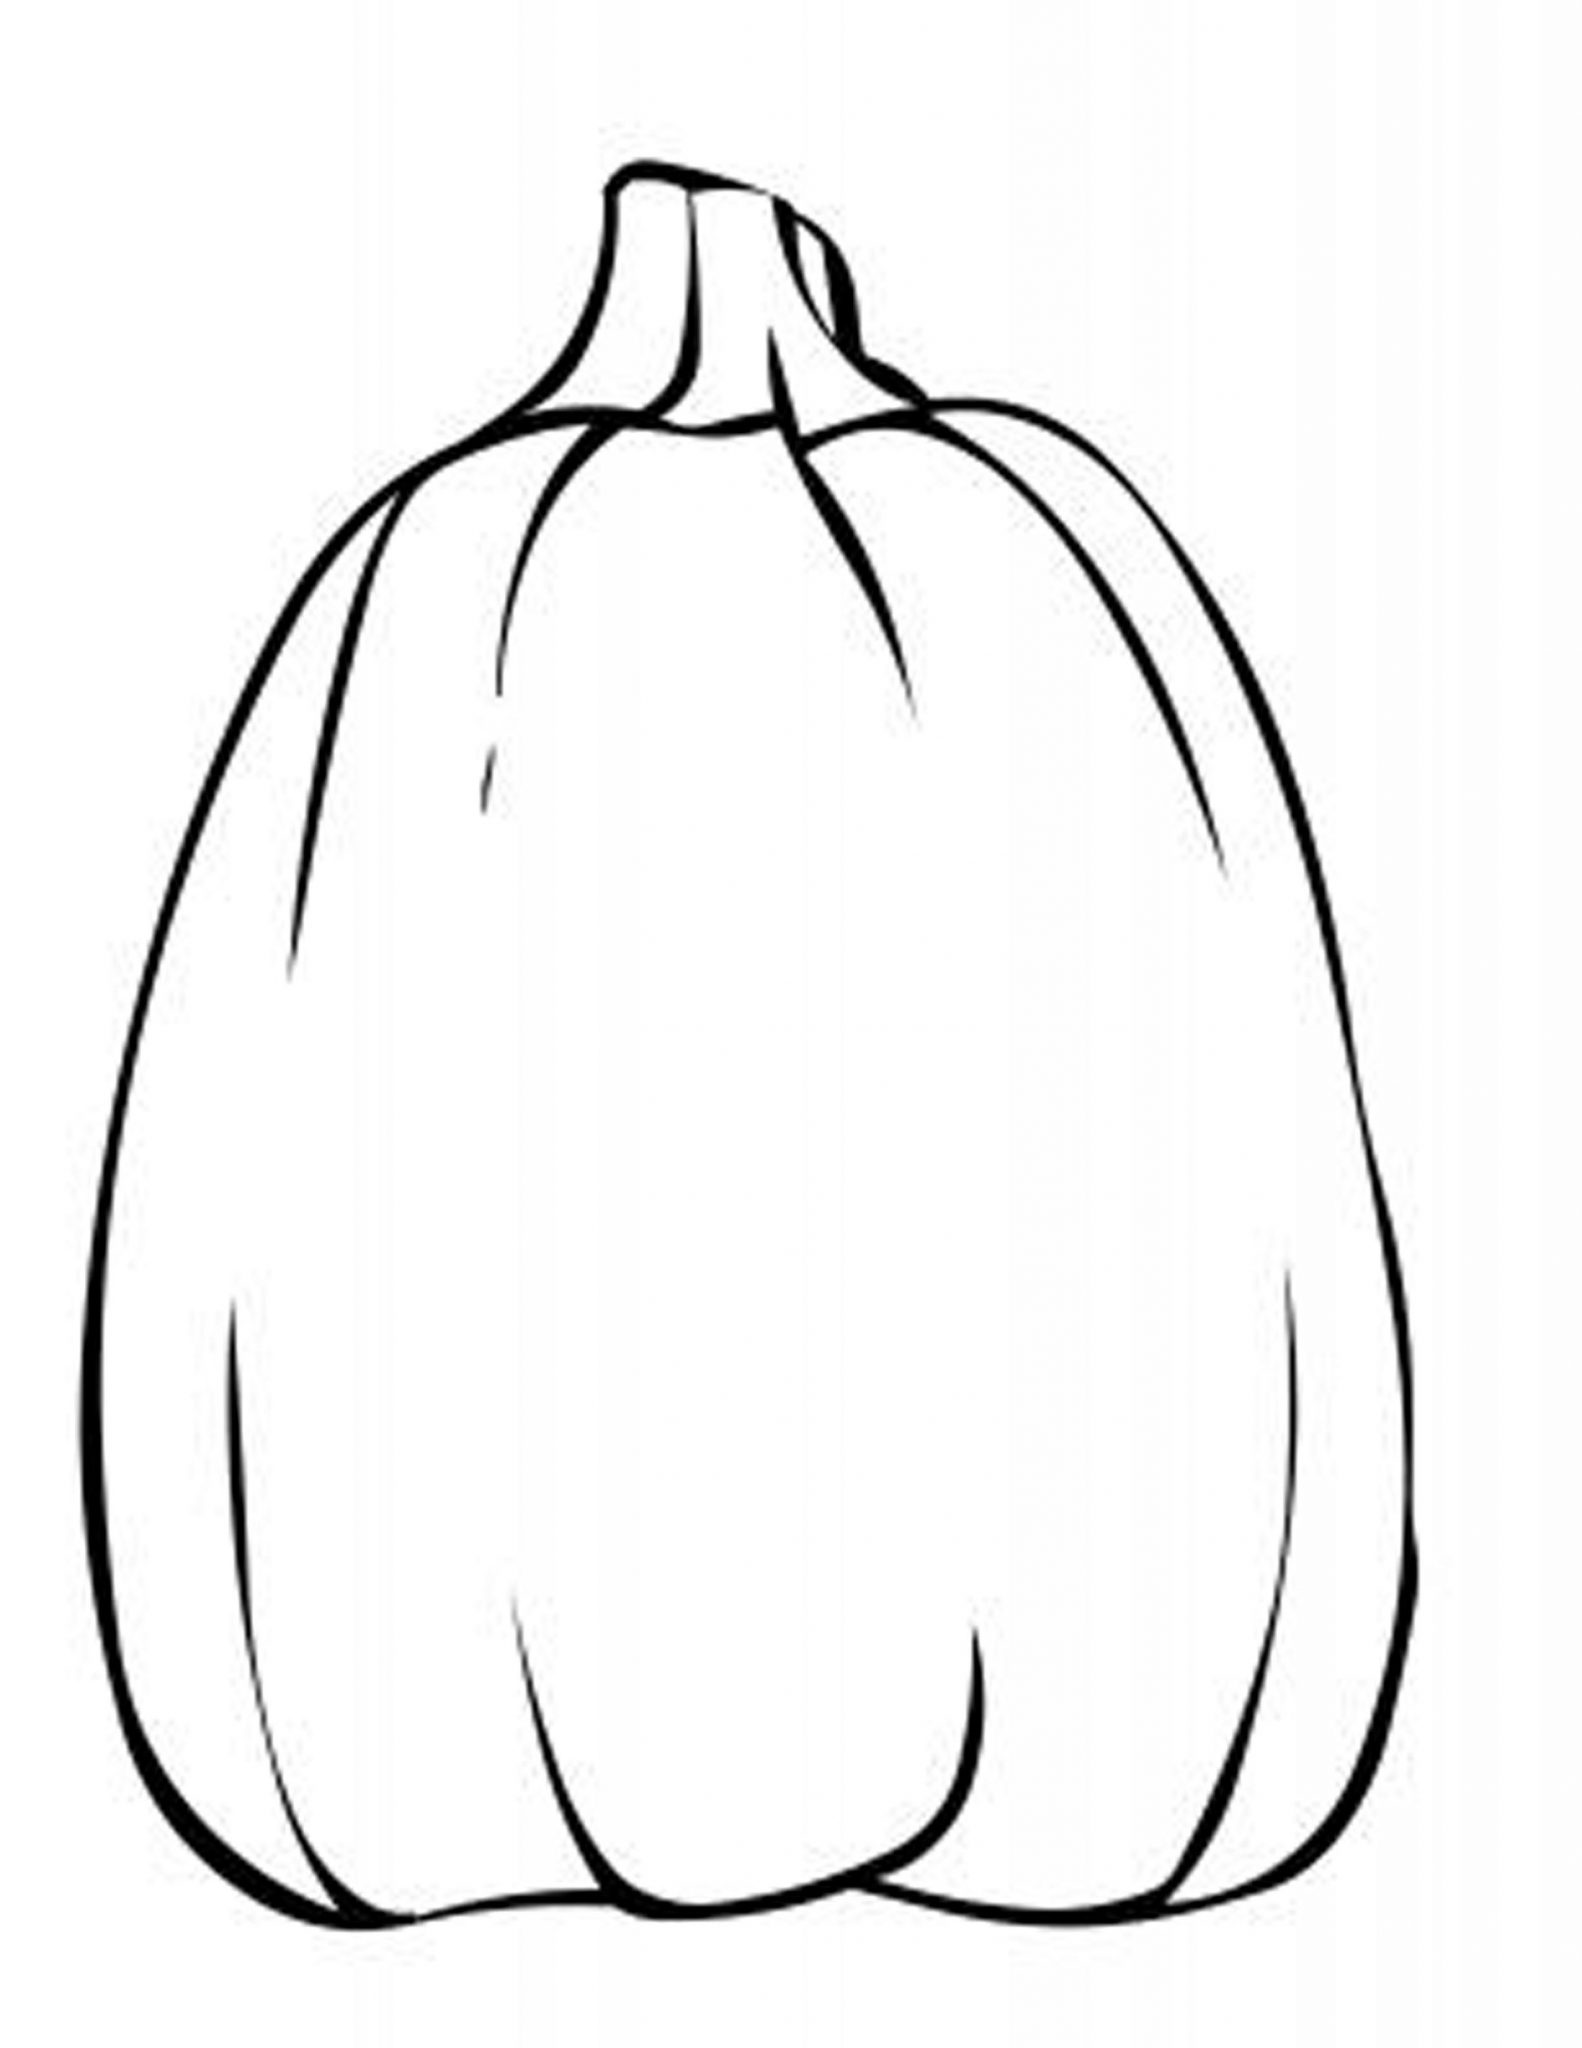 color a pumpkin print download pumpkin coloring pages and benefits of color a pumpkin 1 1